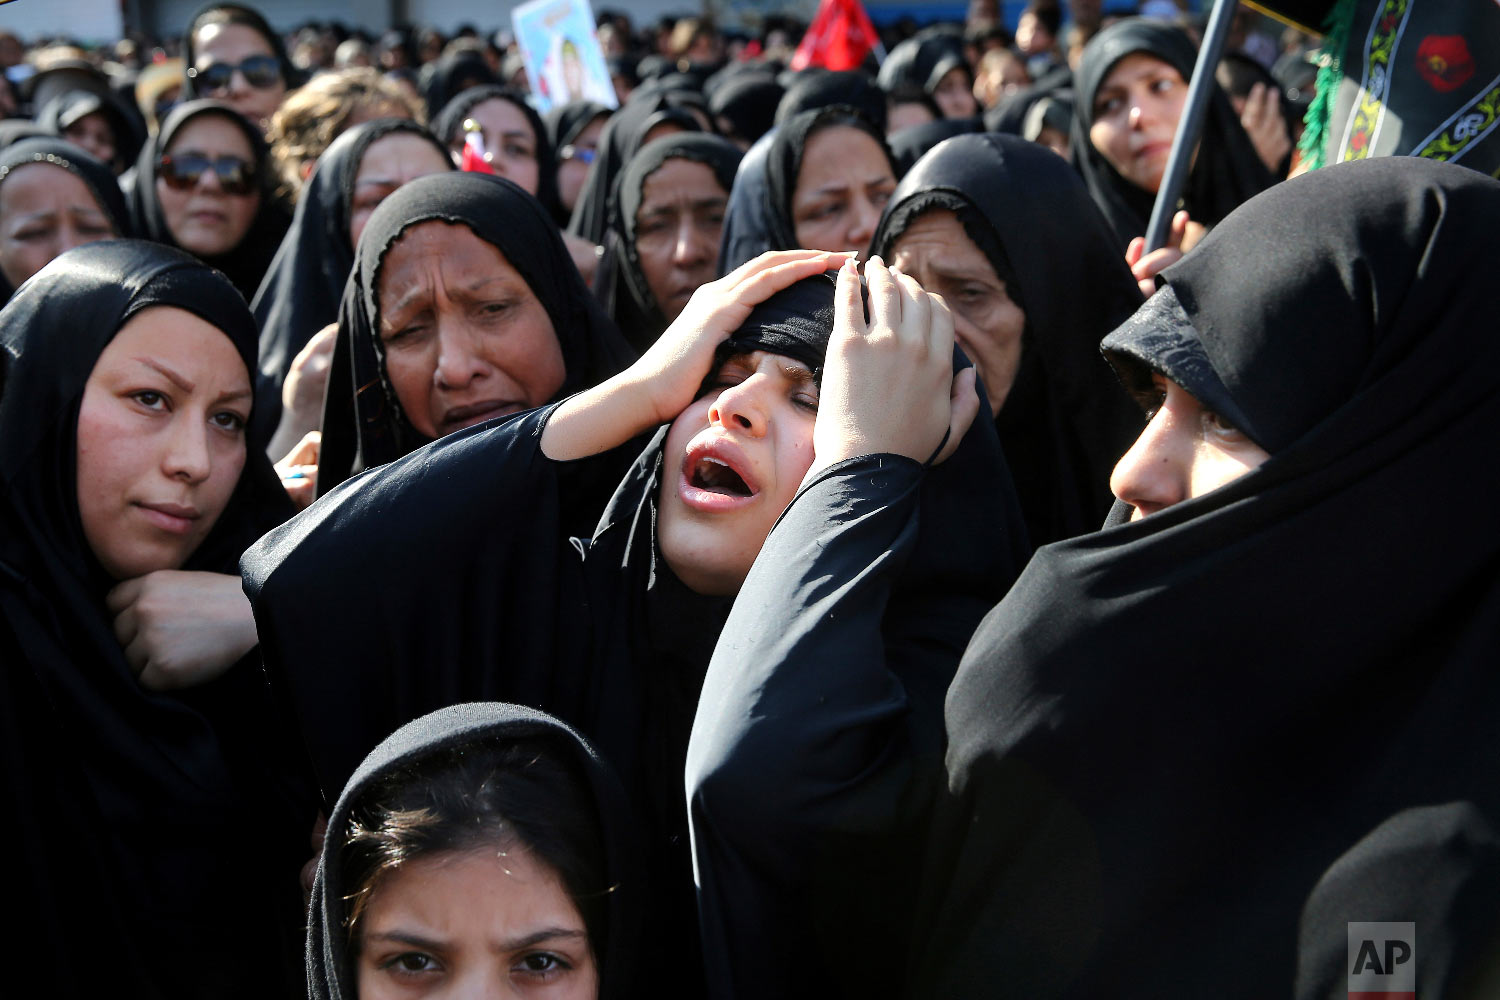 Families of victims of Saturday's terror attack on a military parade in the southwestern city of Ahvaz, that killed 25 people attend a mass funeral ceremony, in Ahvaz, Iran, Sept. 24, 2018. (AP Photo/Ebrahim Noroozi)